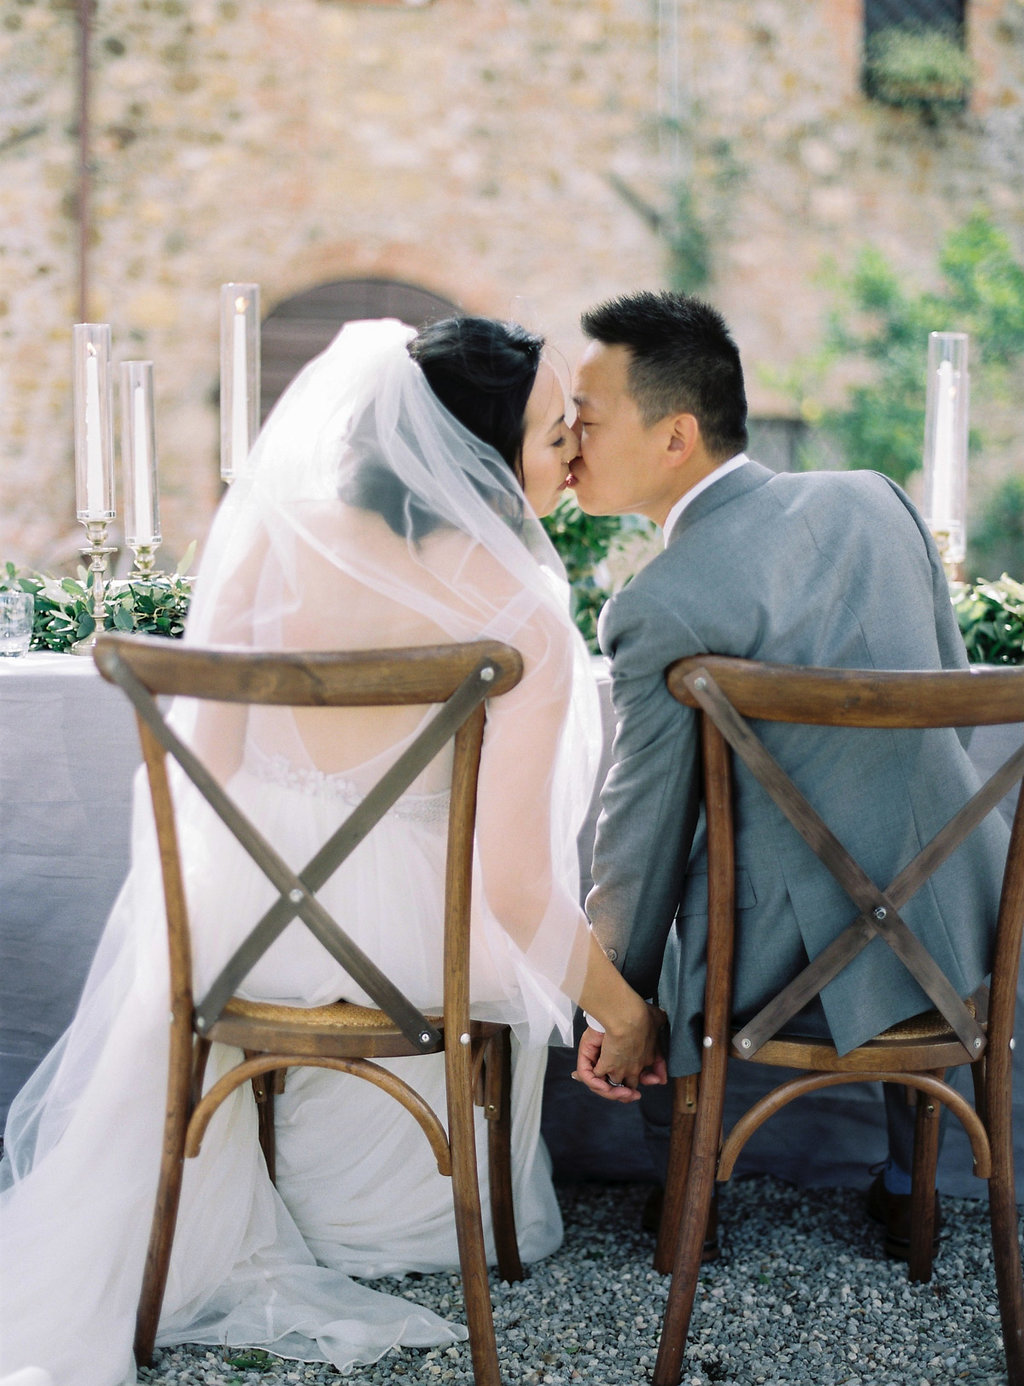 sweetheart table kisses - photo by Katie Grant Photography https://ruffledblog.com/classically-beautiful-intimate-wedding-in-tuscany